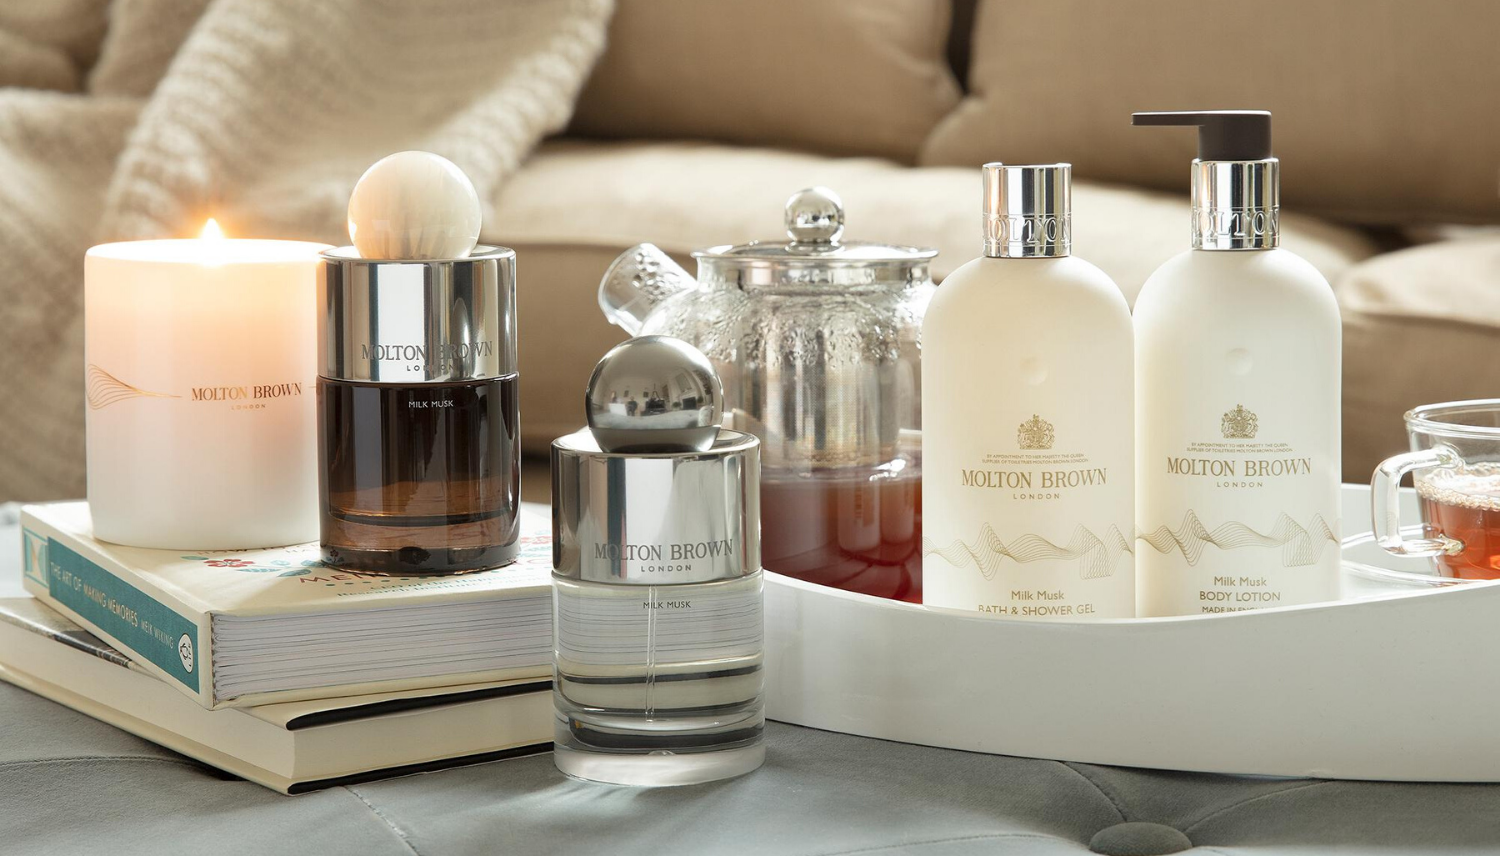 Molton Brown // Milk Musk Collection